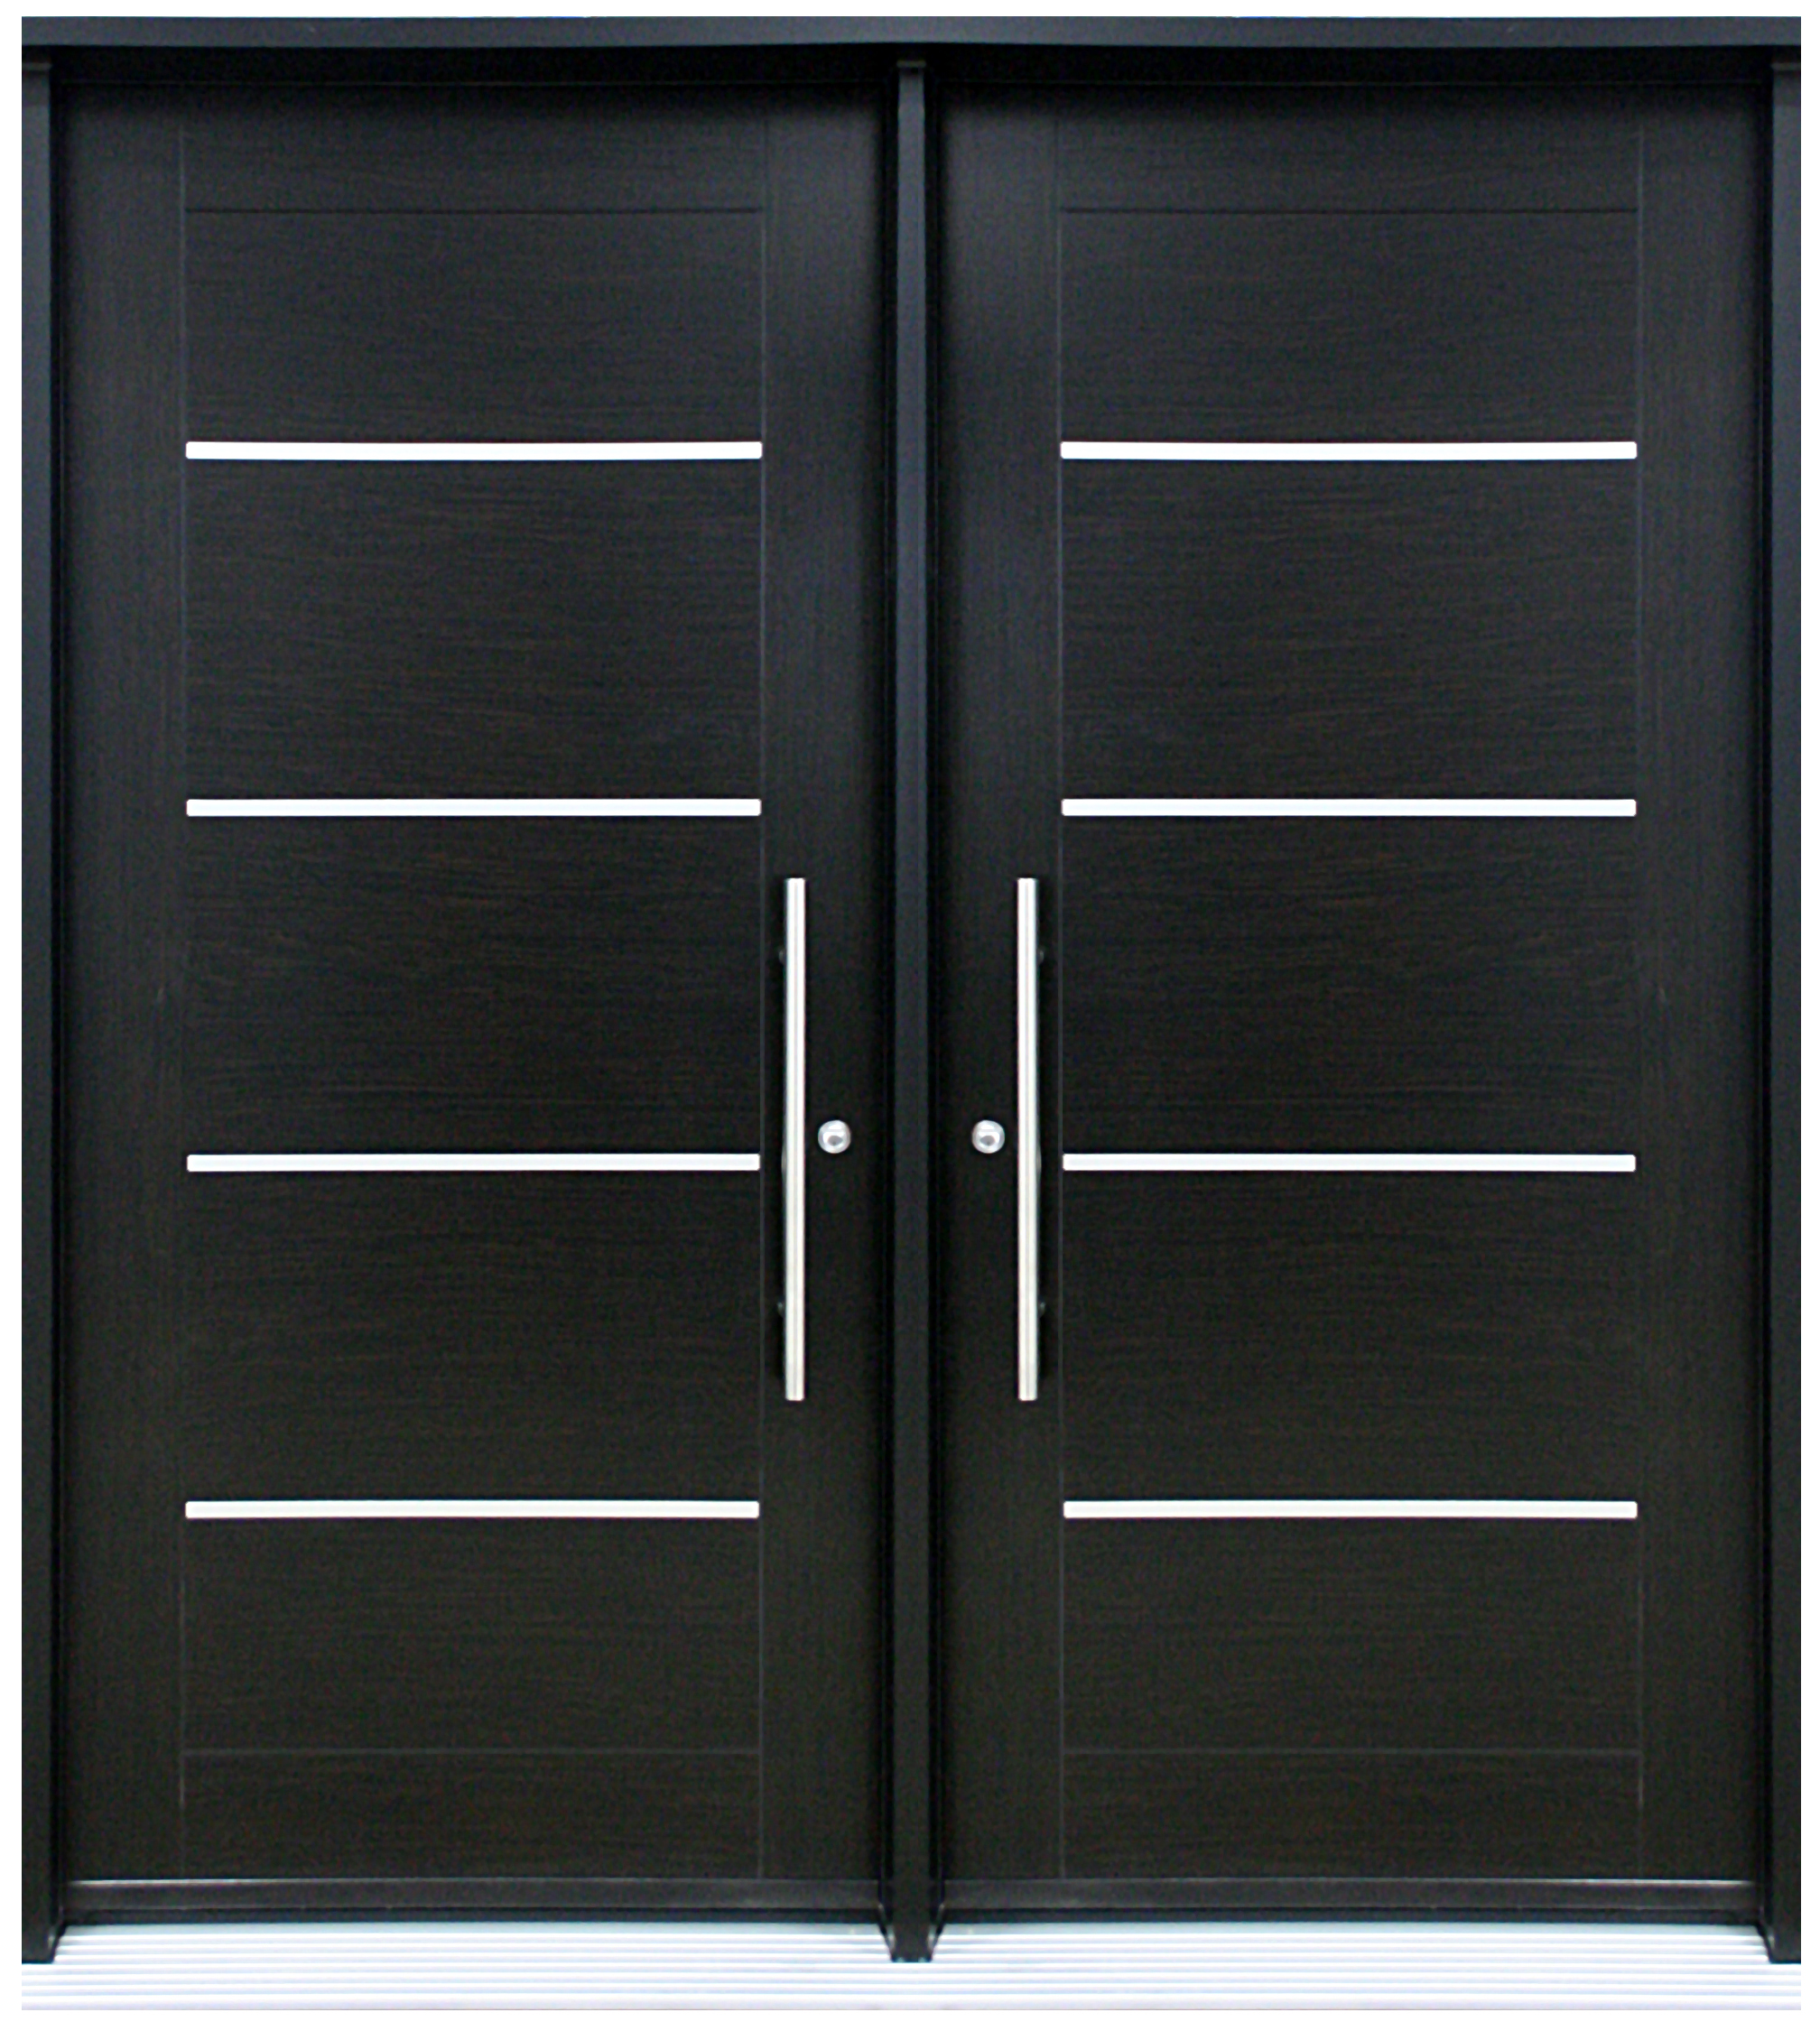 porte contemporaine sigma 2 porte double portatec fabricant de porte d 39 entr e sur mesure. Black Bedroom Furniture Sets. Home Design Ideas